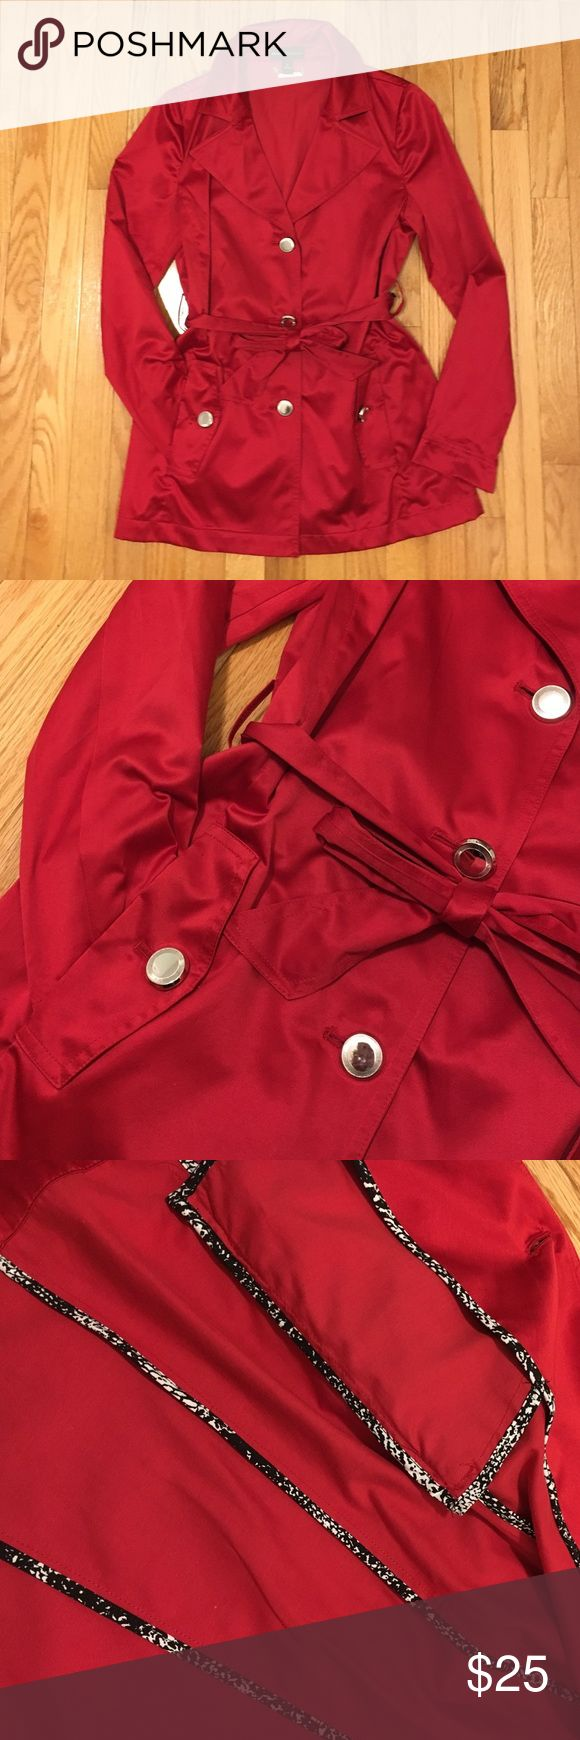 Red Trench by Dana Buchman Excellent condition lightweight red trench coat. Worn once! Satin like finish. 55% polyester and 45% cotton. Dry clean only. Super nice contrast print bias finishings on the inside. Front pockets. Button front and belt tie. Dana Buchman Jackets & Coats Trench Coats